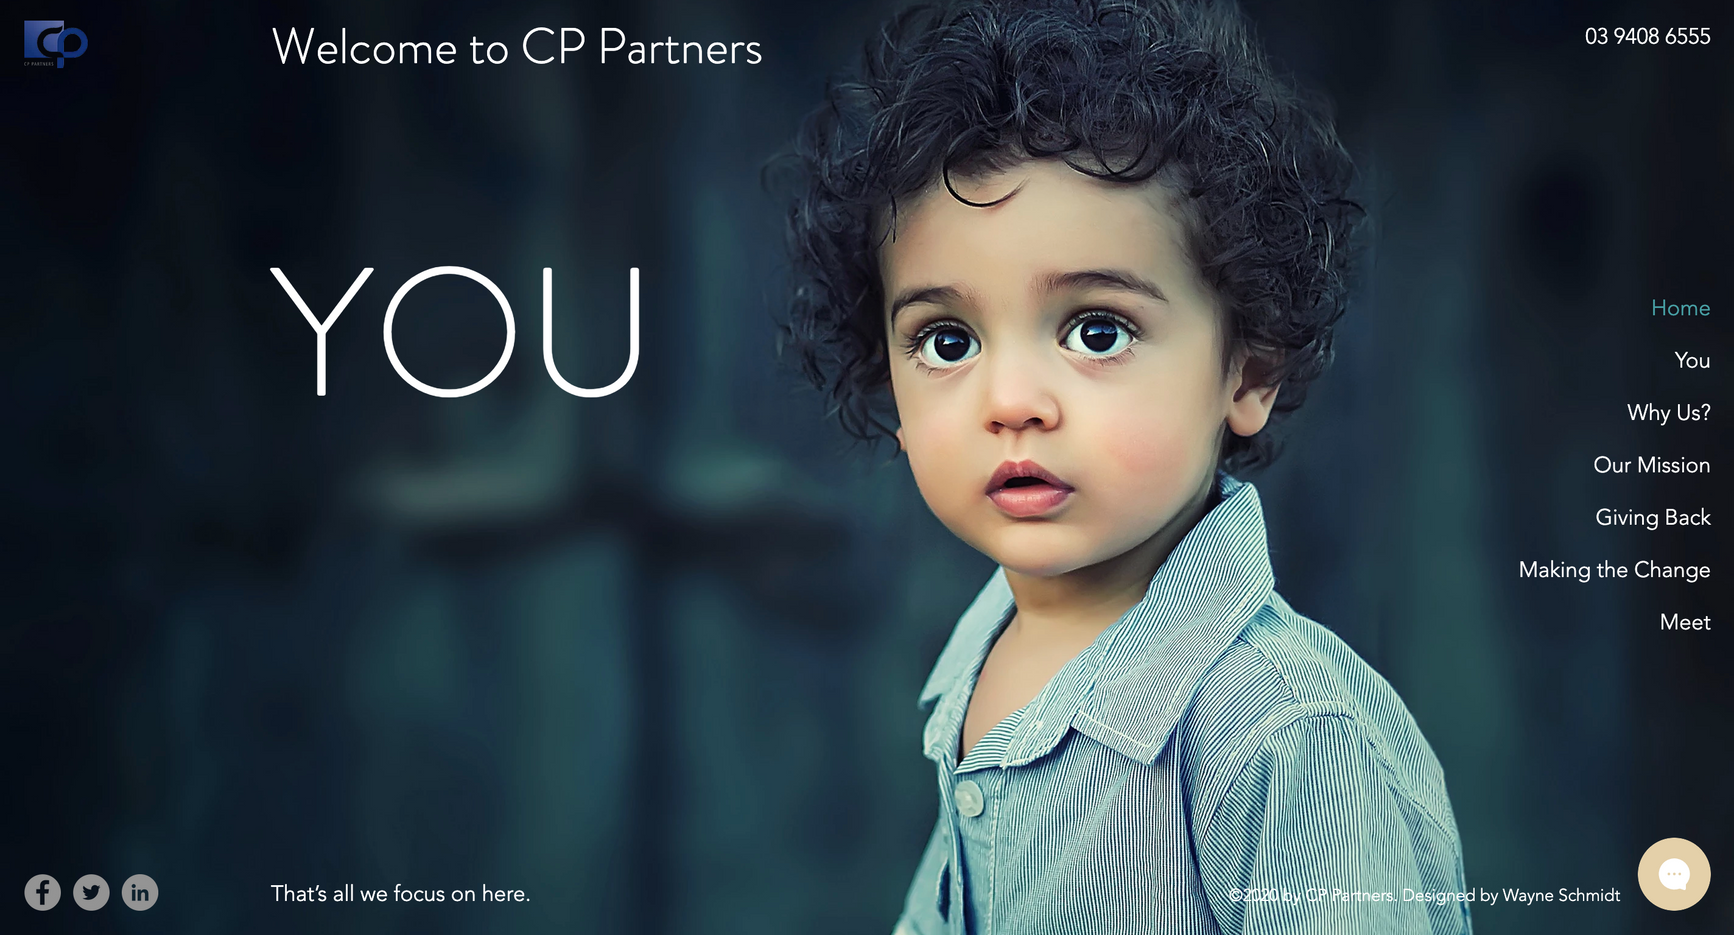 CP Partners